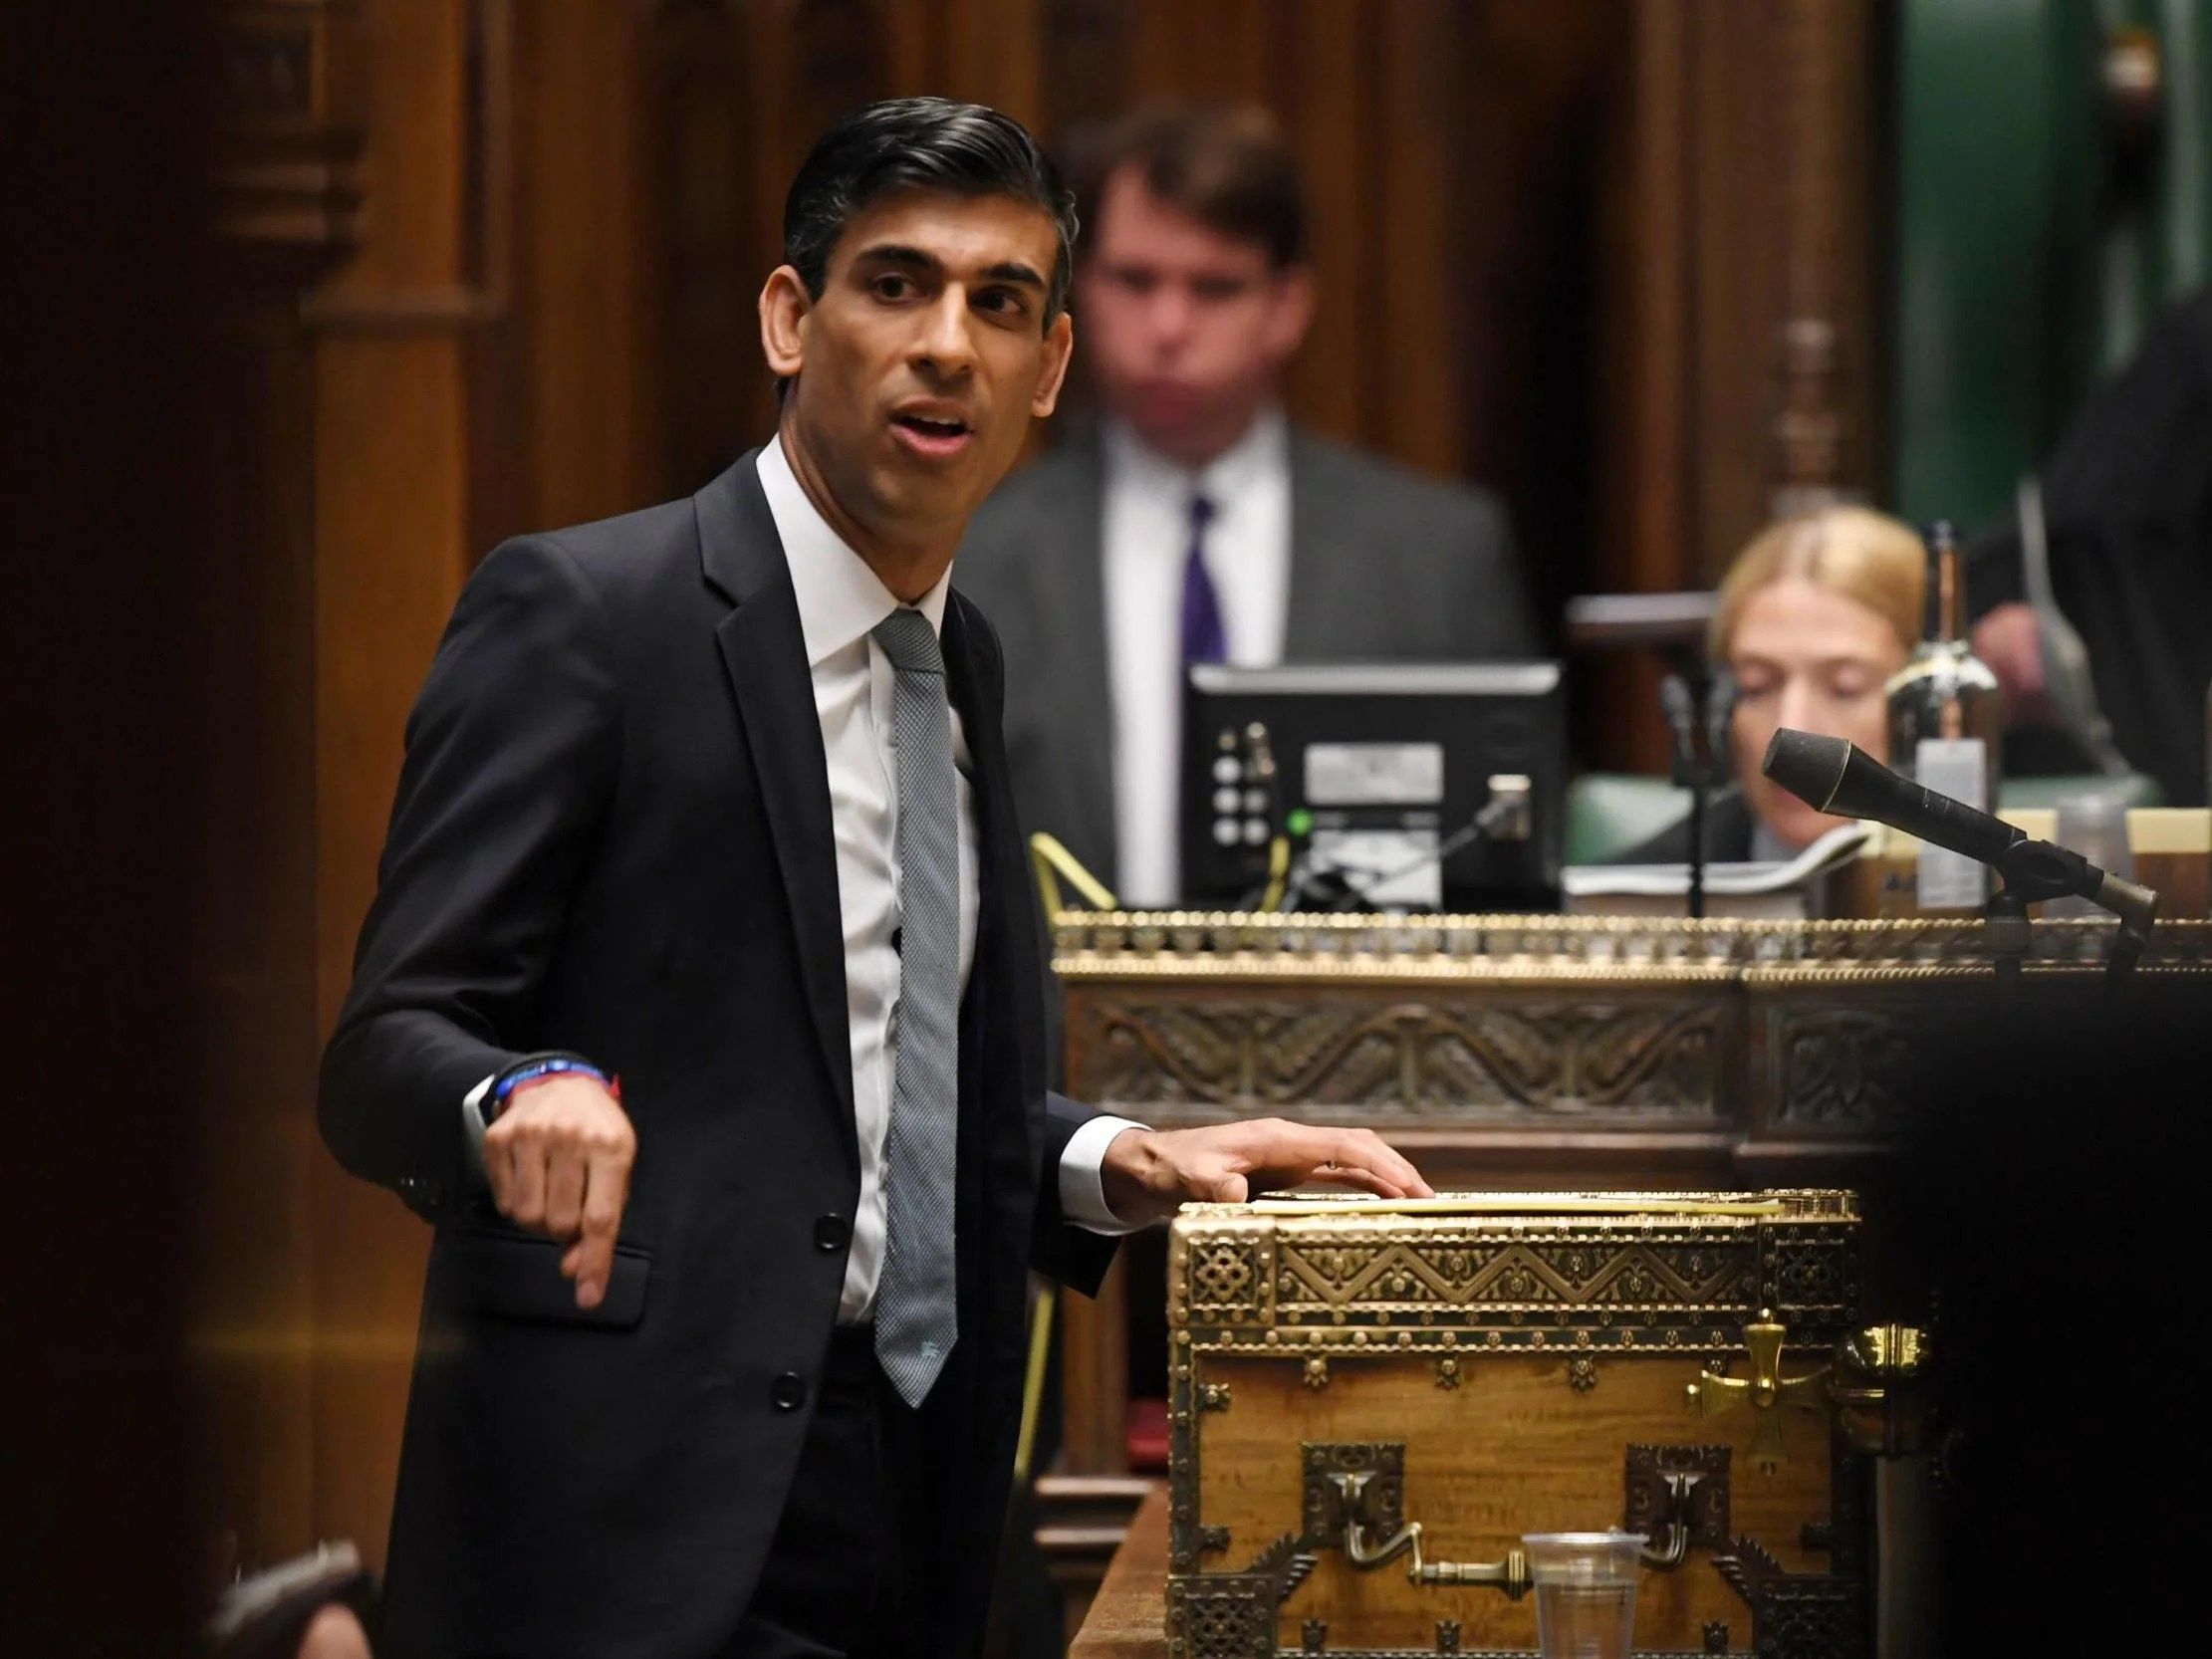 Rishi Sunak warns 'hardship lies ahead' and apologises to those left out of his mini-budget 10